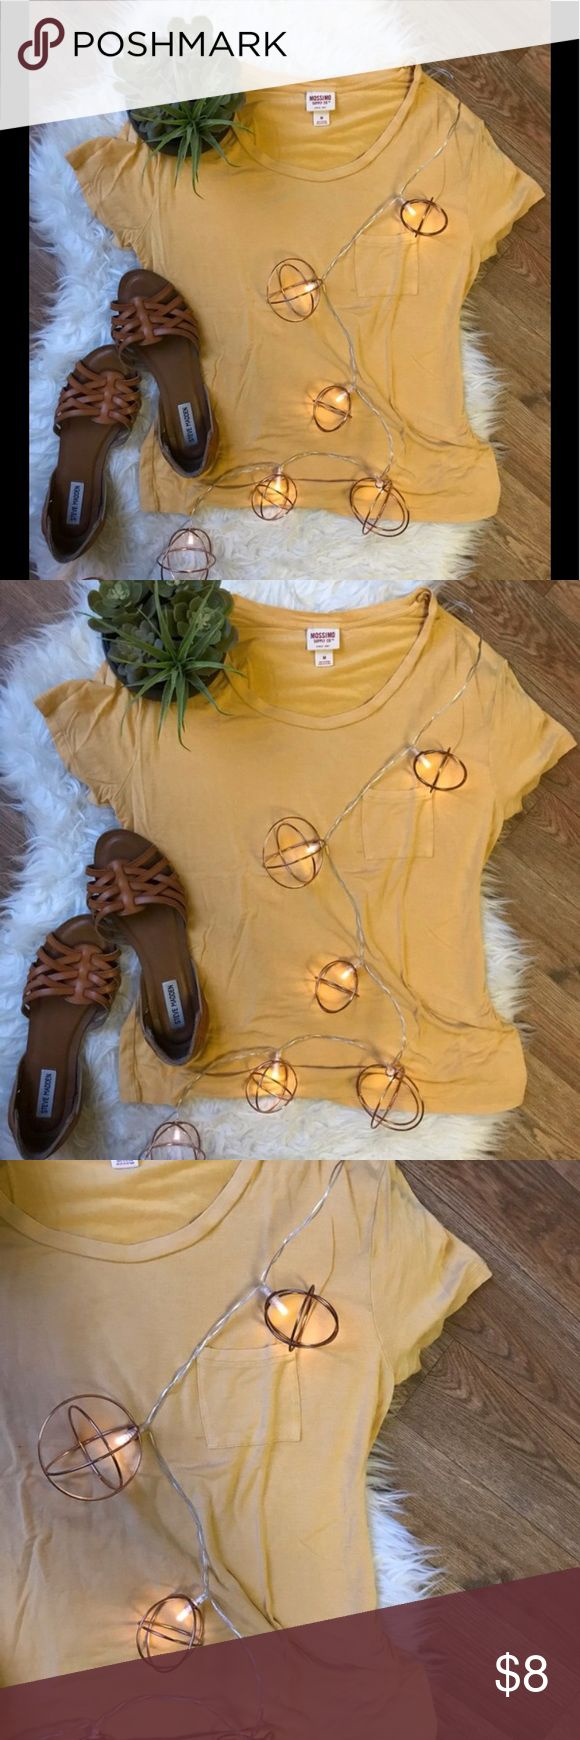 Yellow Slouchy Tee Short sleeve tee, super soft and comfy. Looks so cute with a long necklace and leggings.   #simple #closetbasic #closetstaple #chicyetcomfy #slouchytshirt #slouchtee Mossimo Supply Co. Tops Tees - Short Sleeve